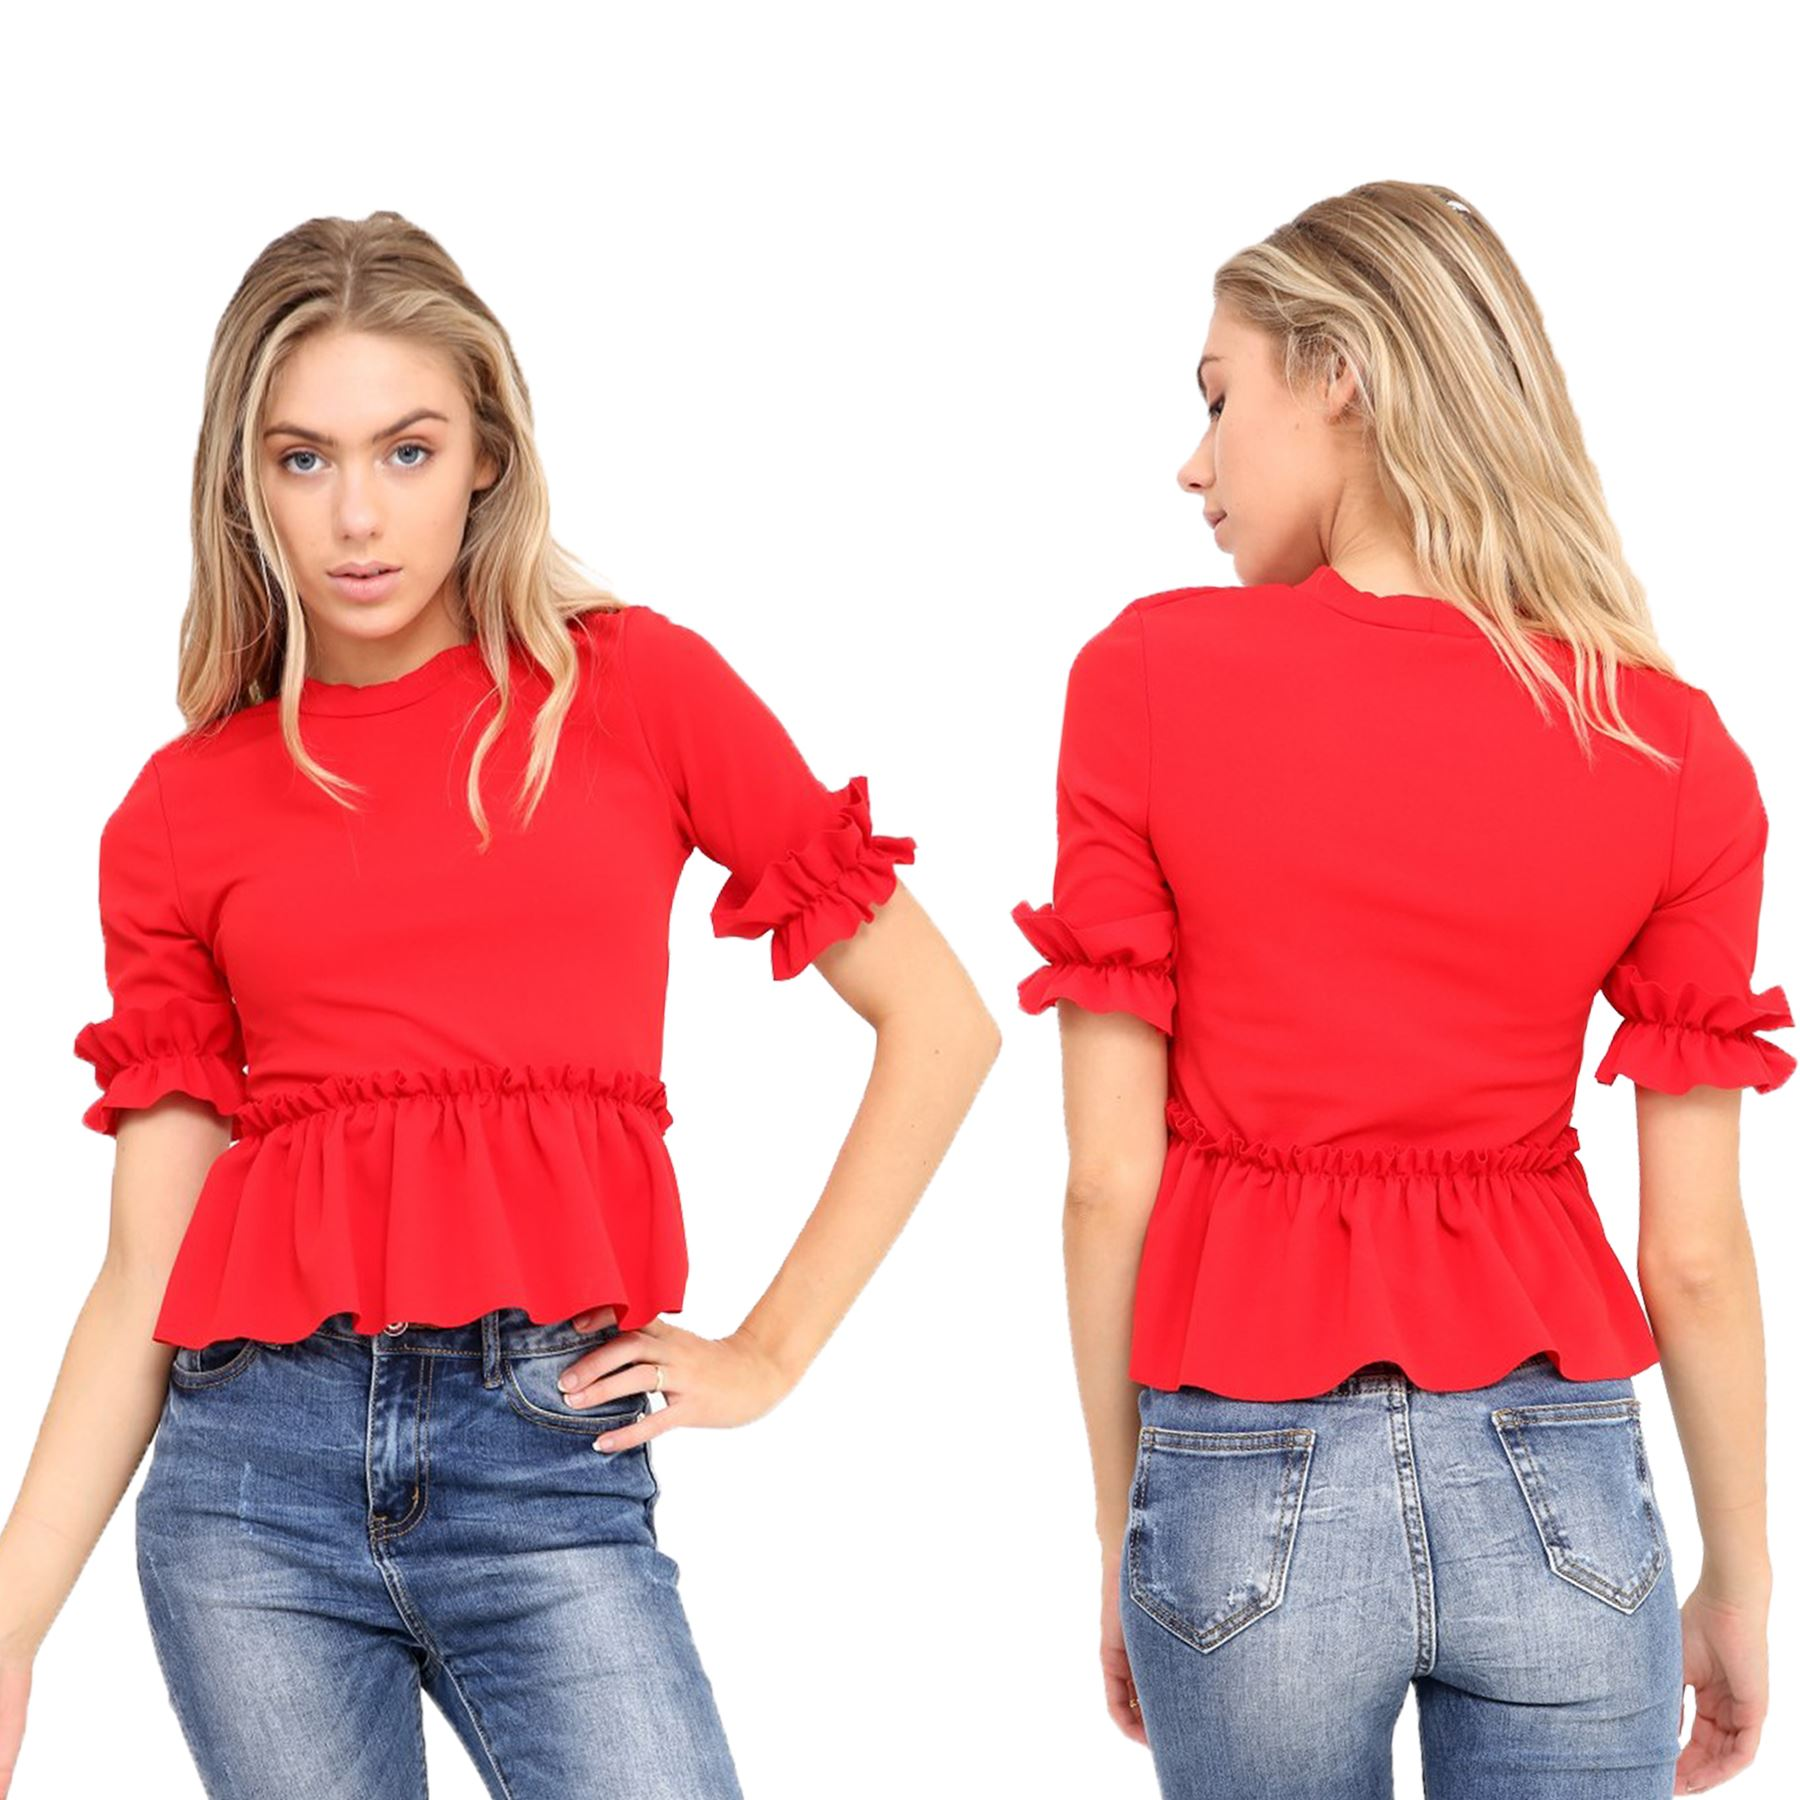 d6439673480341 Details about Ladies Ruffle Frill Peplum Flared Short Sleeve Crepe Plain  Party Smart Crop Top